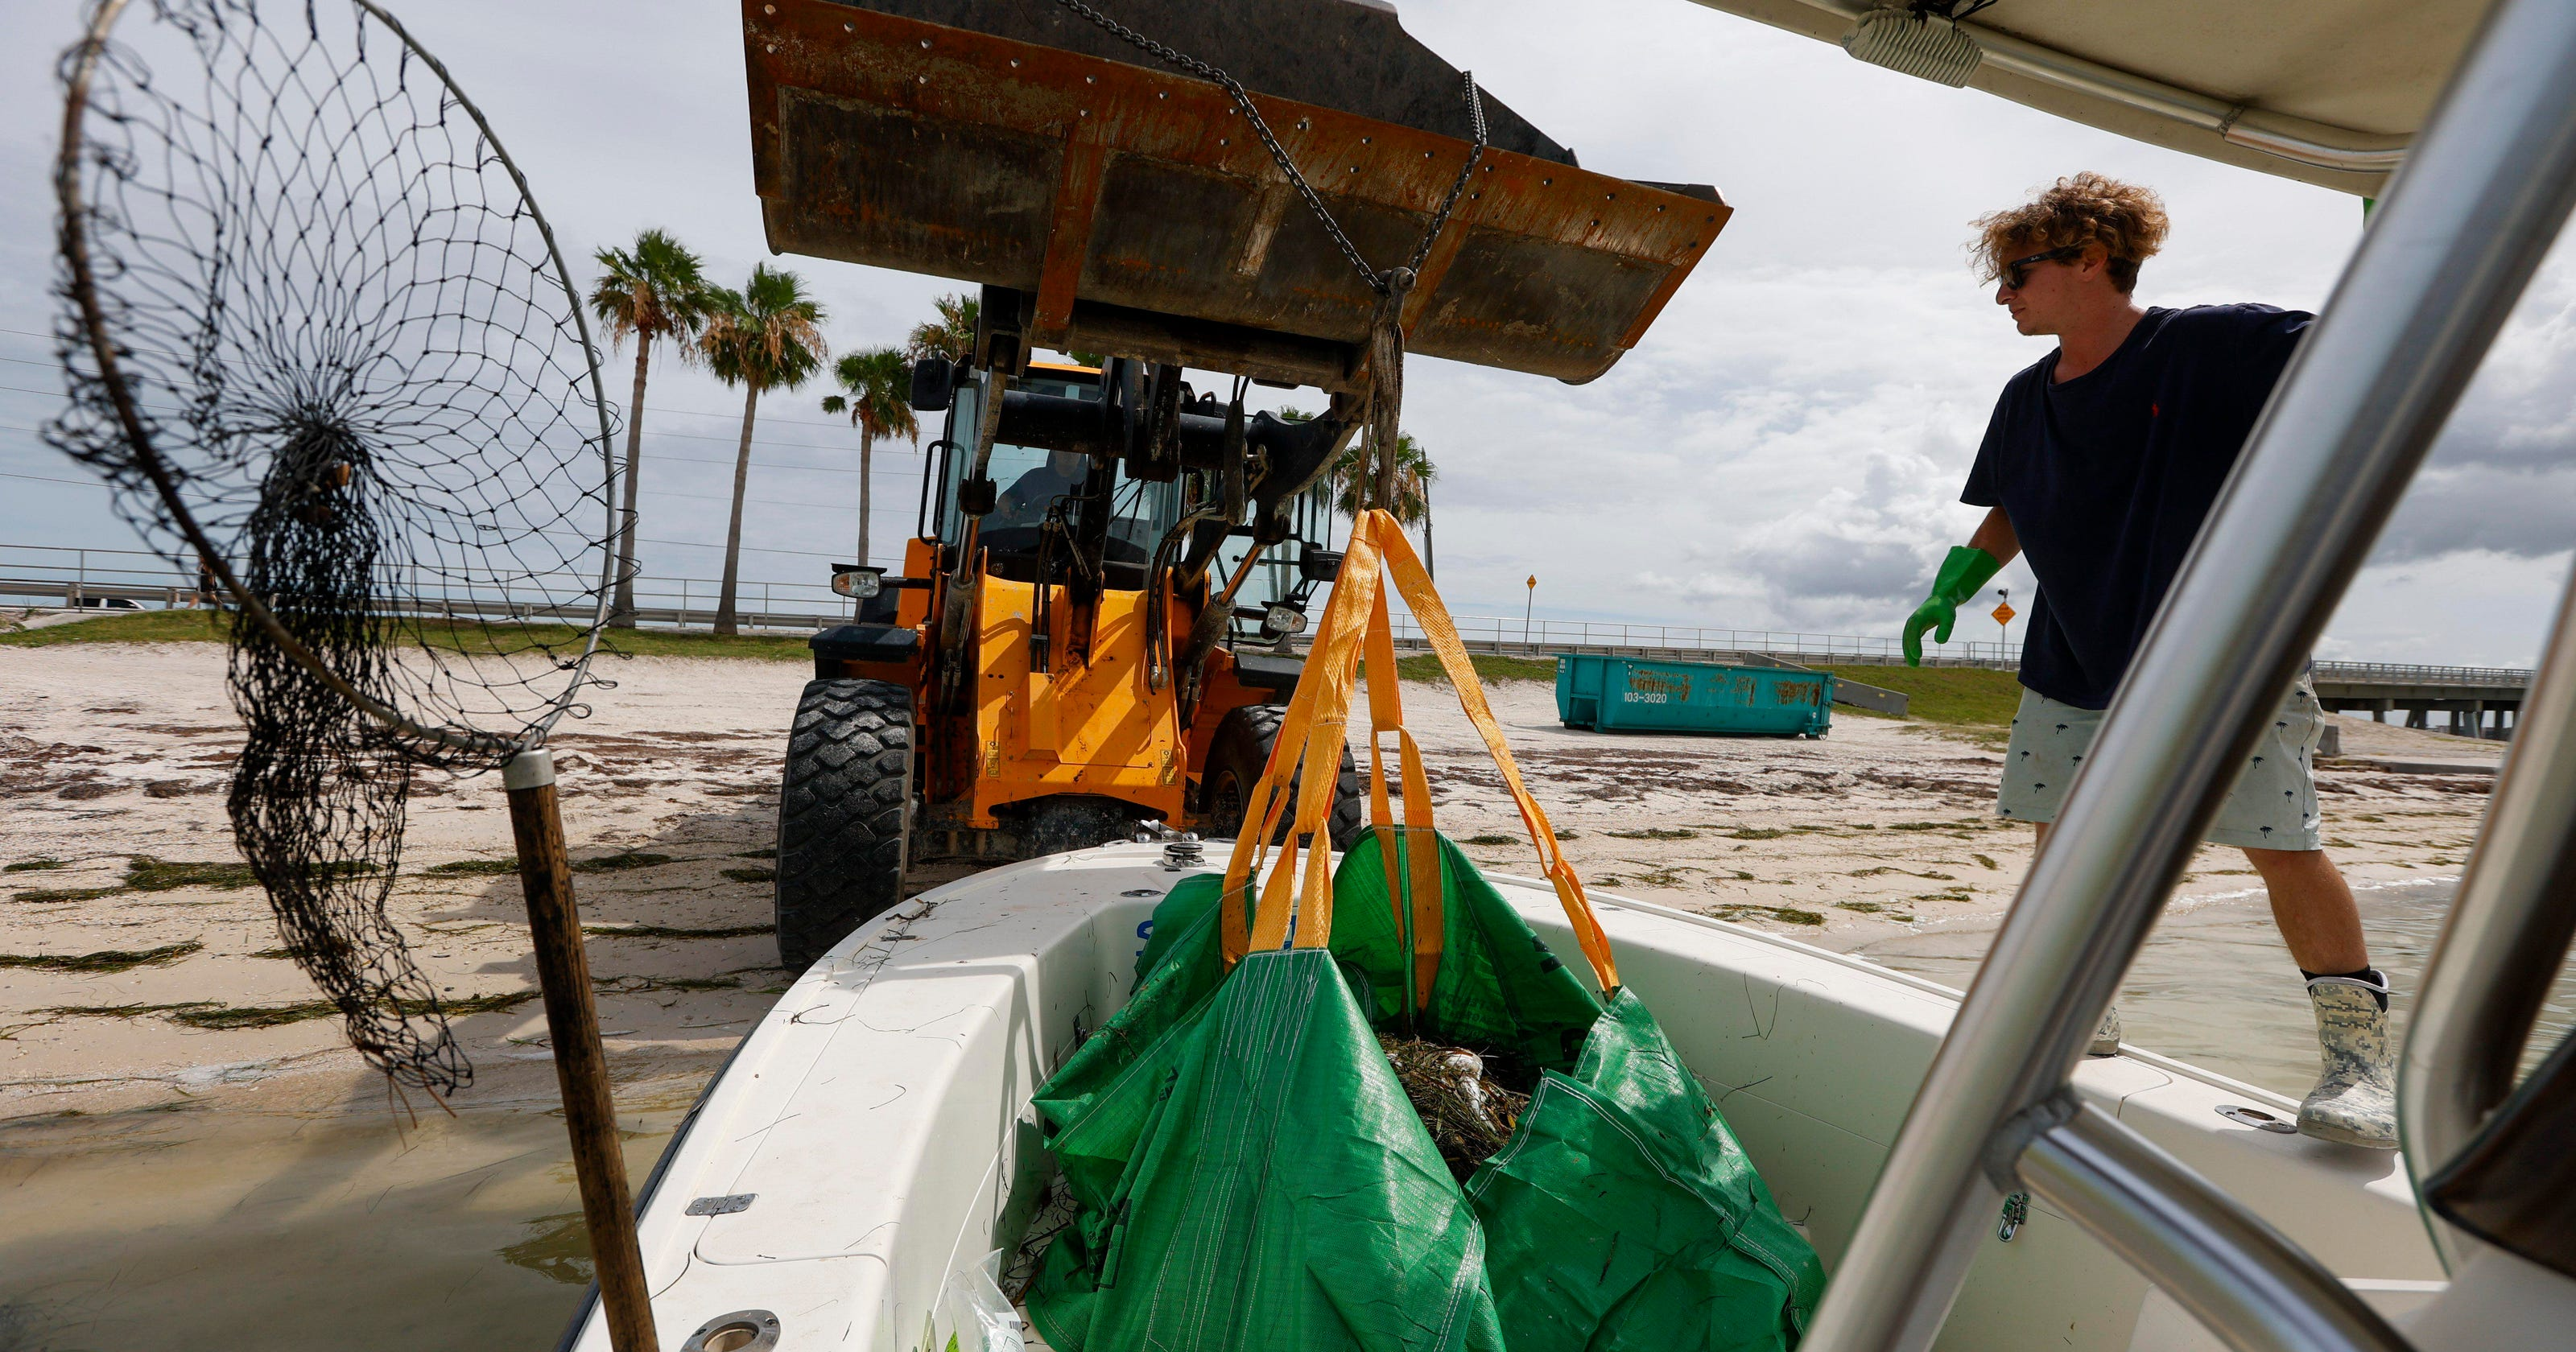 'The beaches are open': Florida welcomes tourists amid red tide outbreak